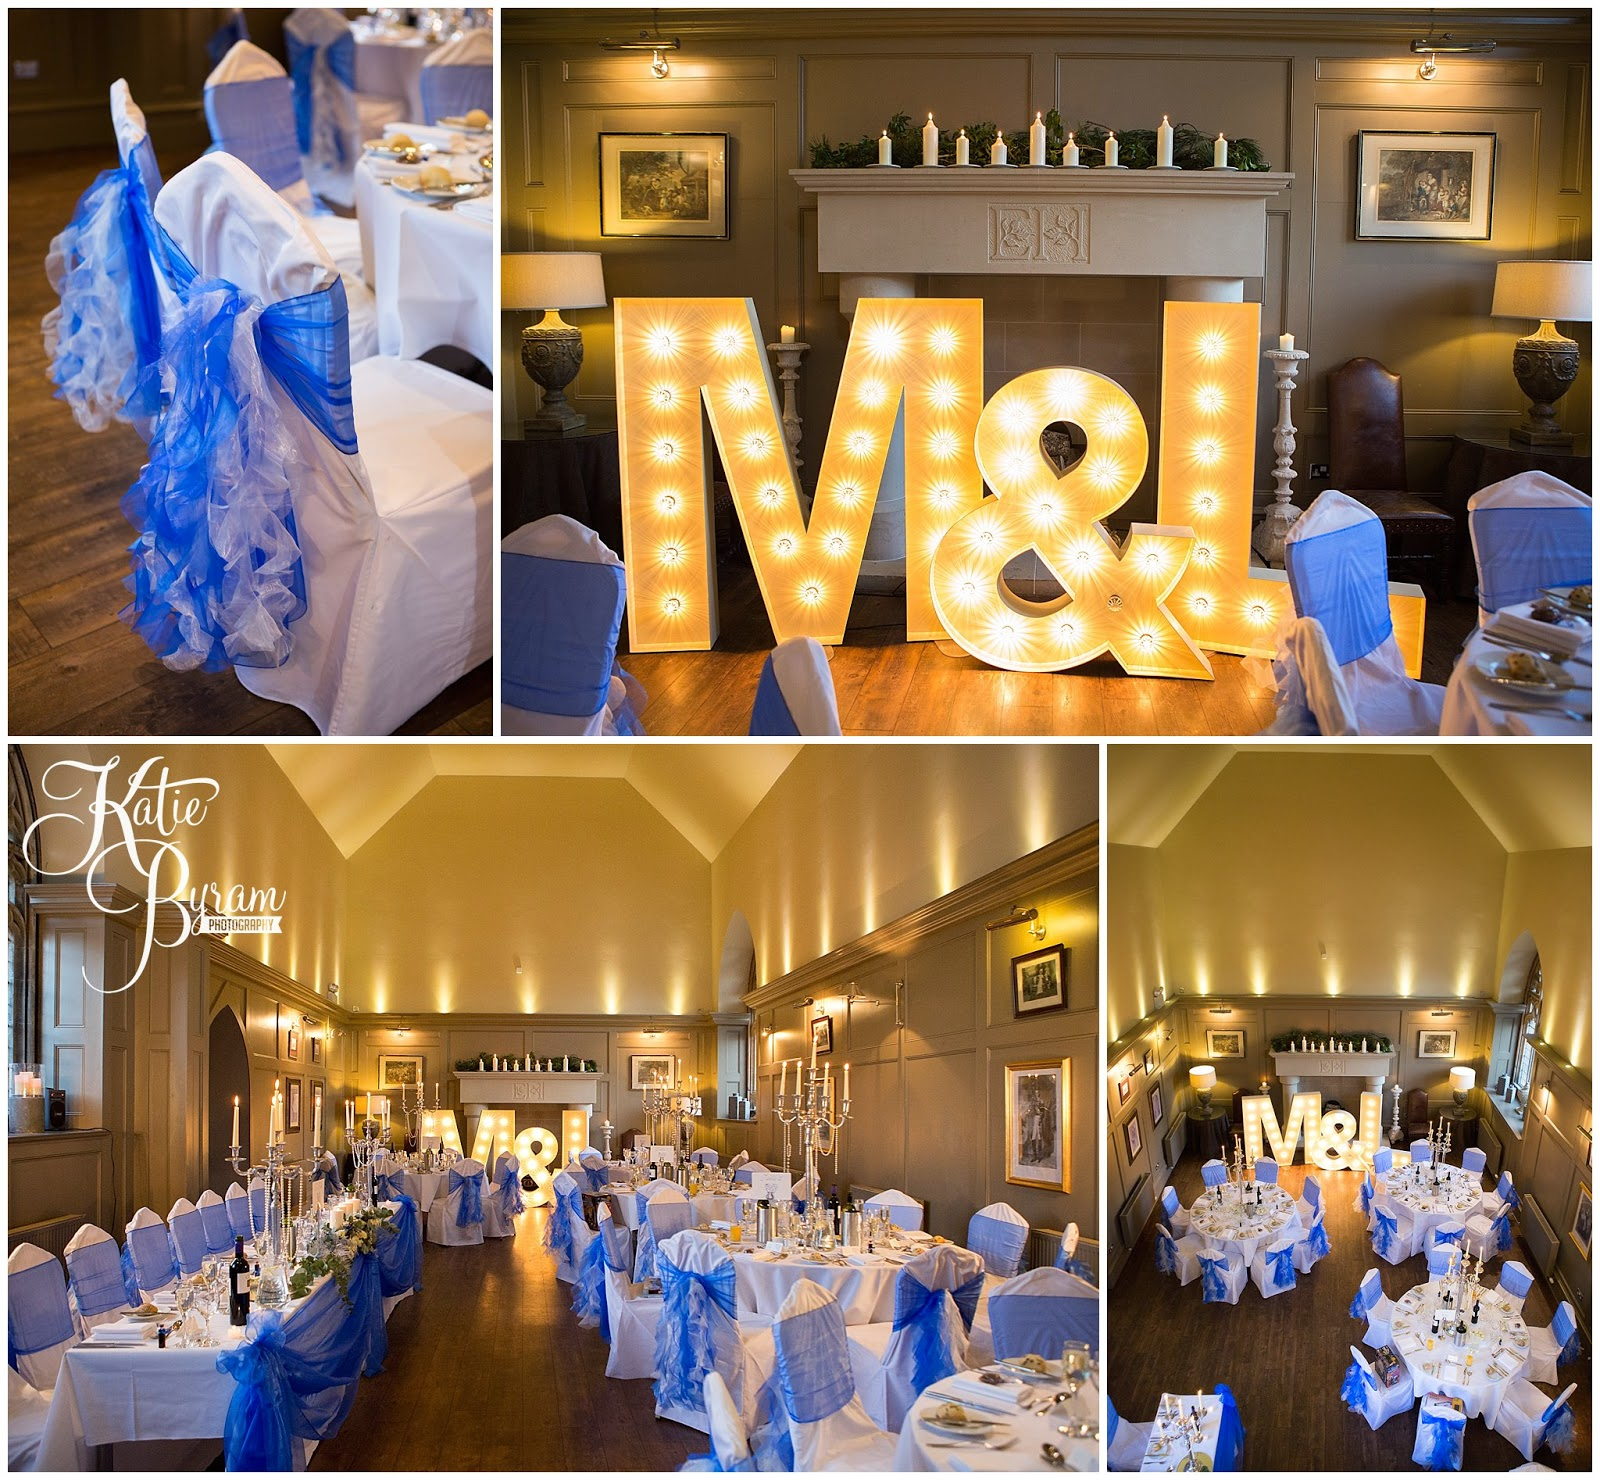 coco luminaire, light up letters wedding, light up letters newcastle, ,  ellingham hall, ellingham hall wedding, katie byram photography, alnwick treehouse wedding, alnwick garden wedding, alnwick wedding,